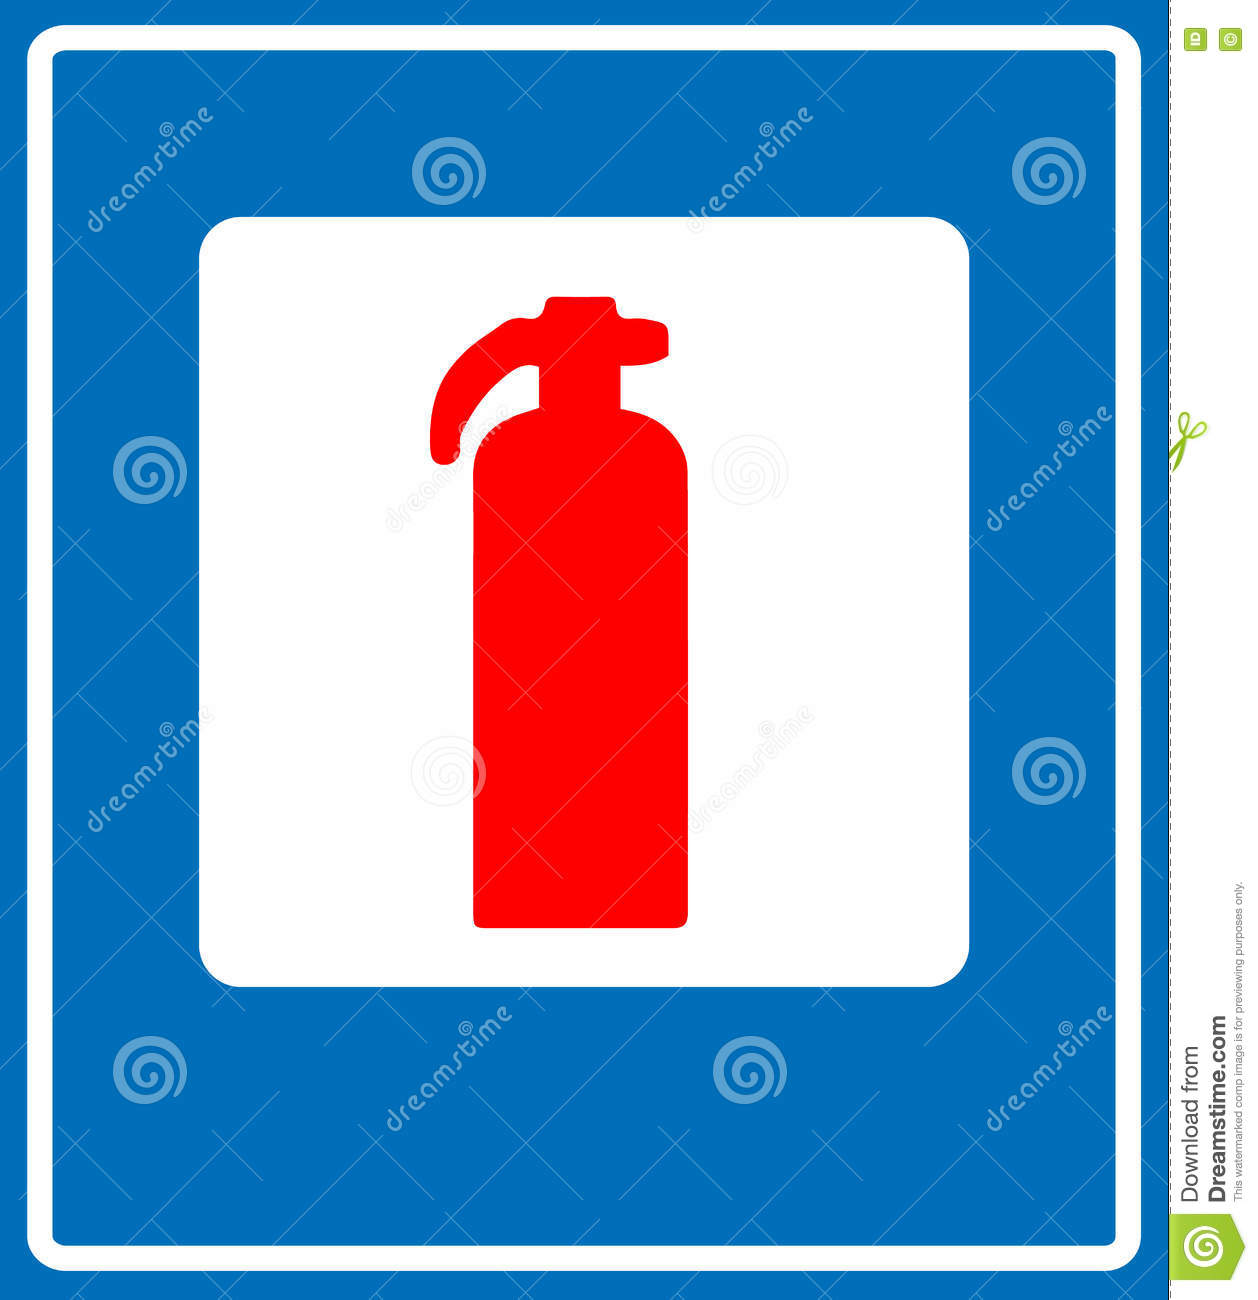 Fire Extinguisher Sign Stock Vector Illustration Of Arrow 82061870